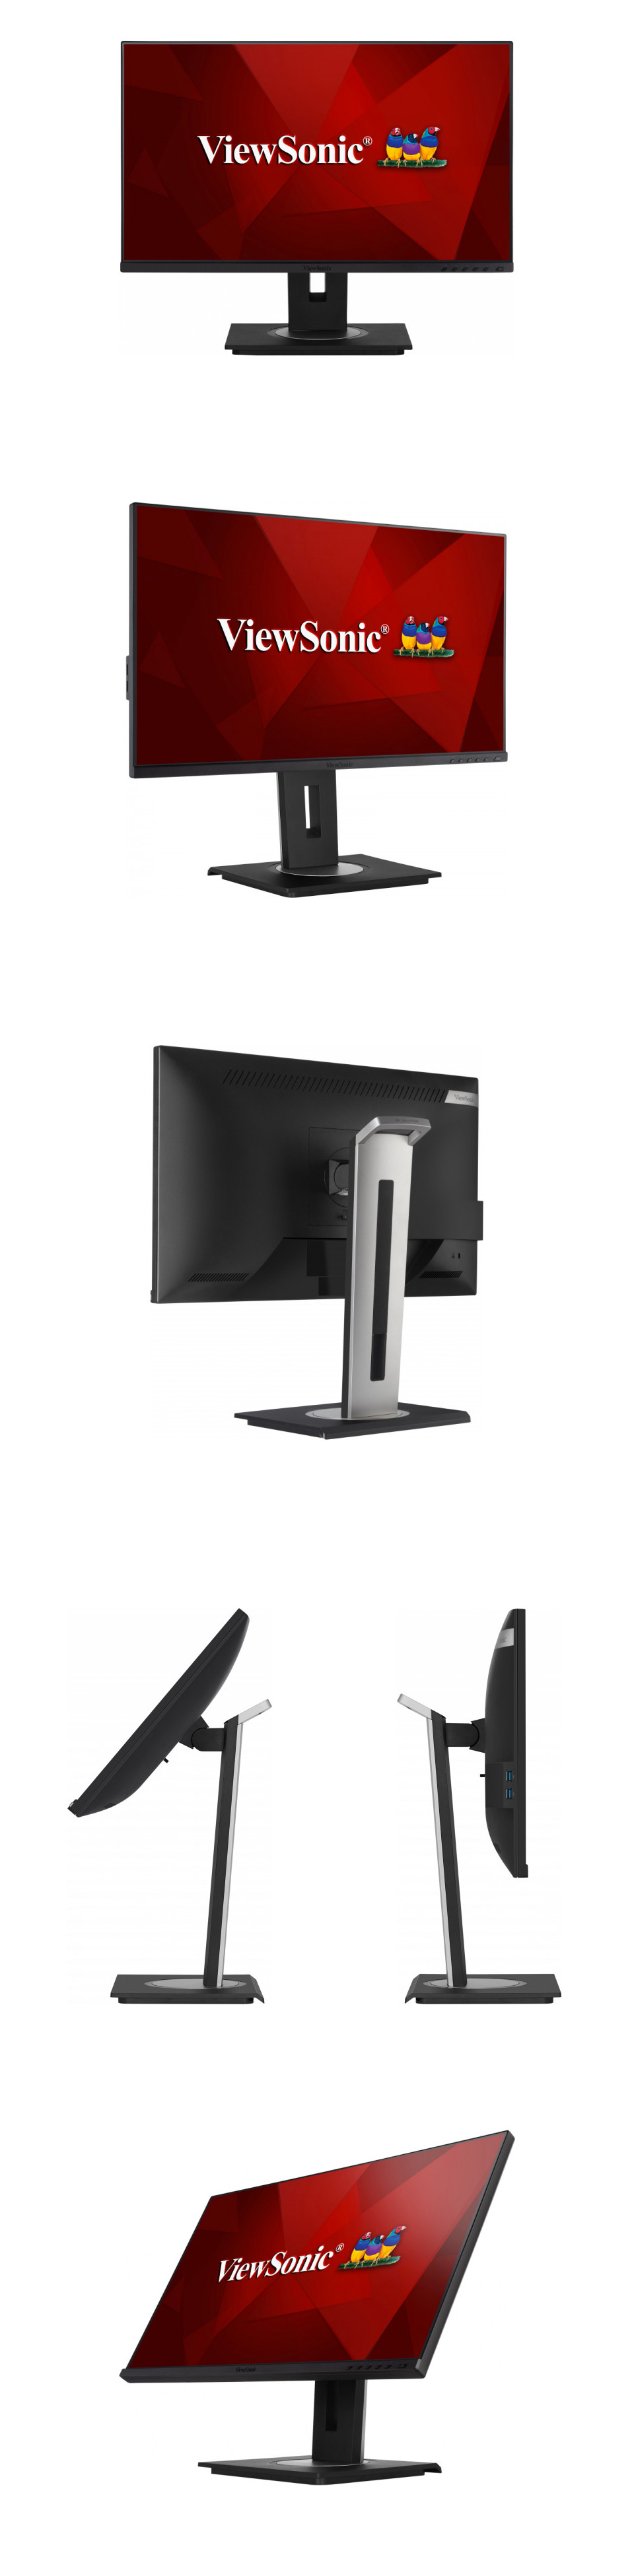 ViewSonic VG2455 FHD IPS 24in Monitor product